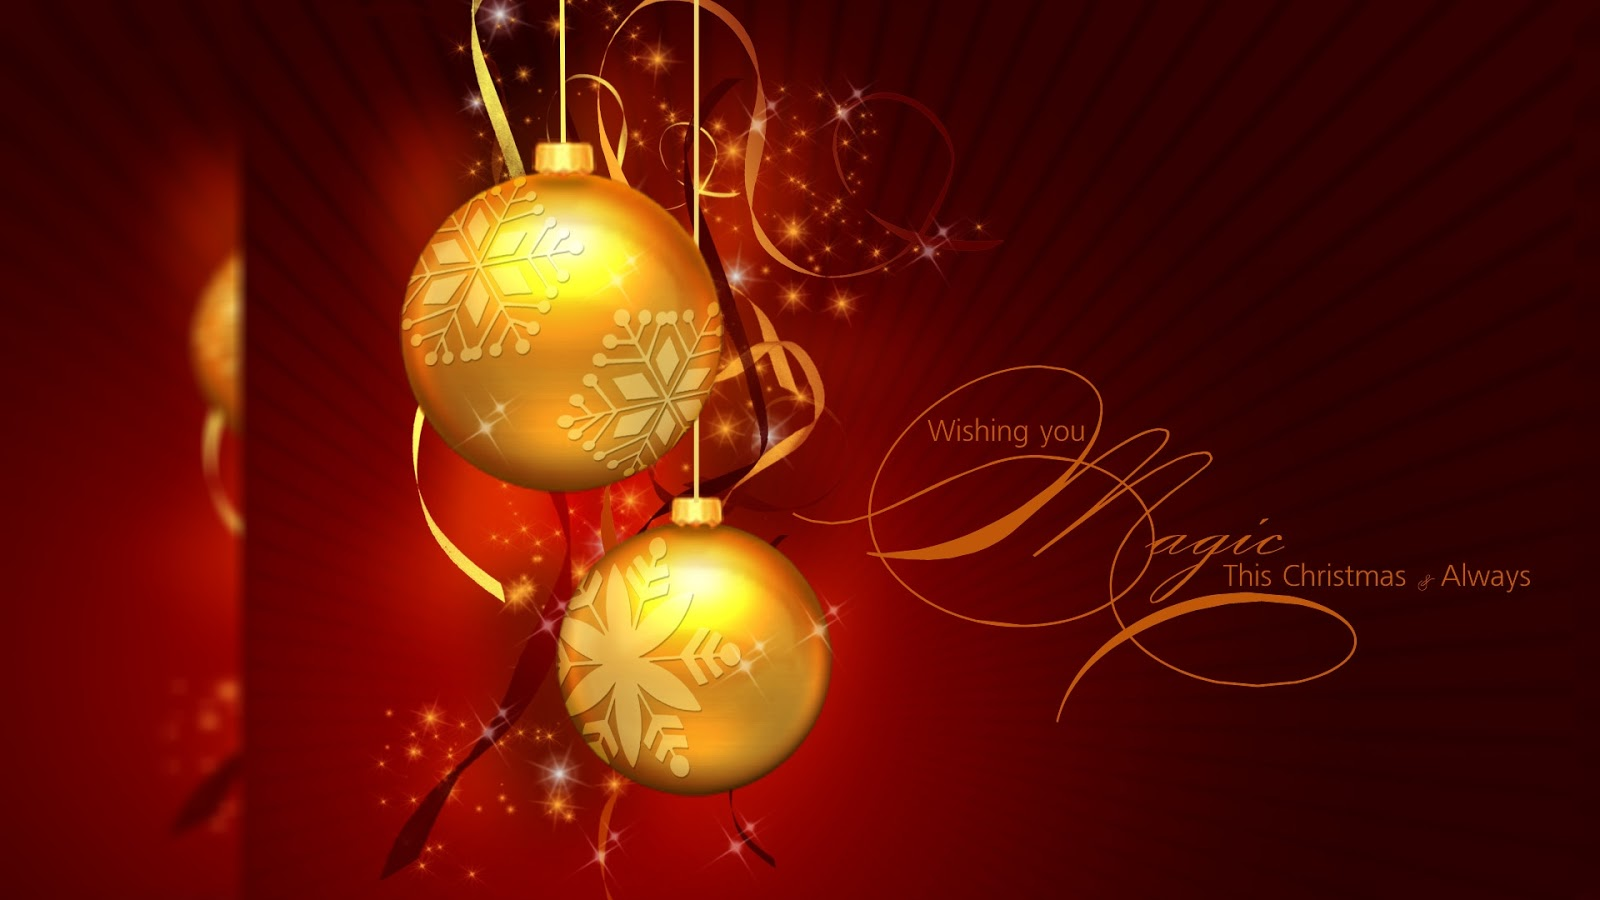 Love Xmas Wallpaper : Wallpaper christmas For Desktop Free Download Wallpaper DaWallpaperz